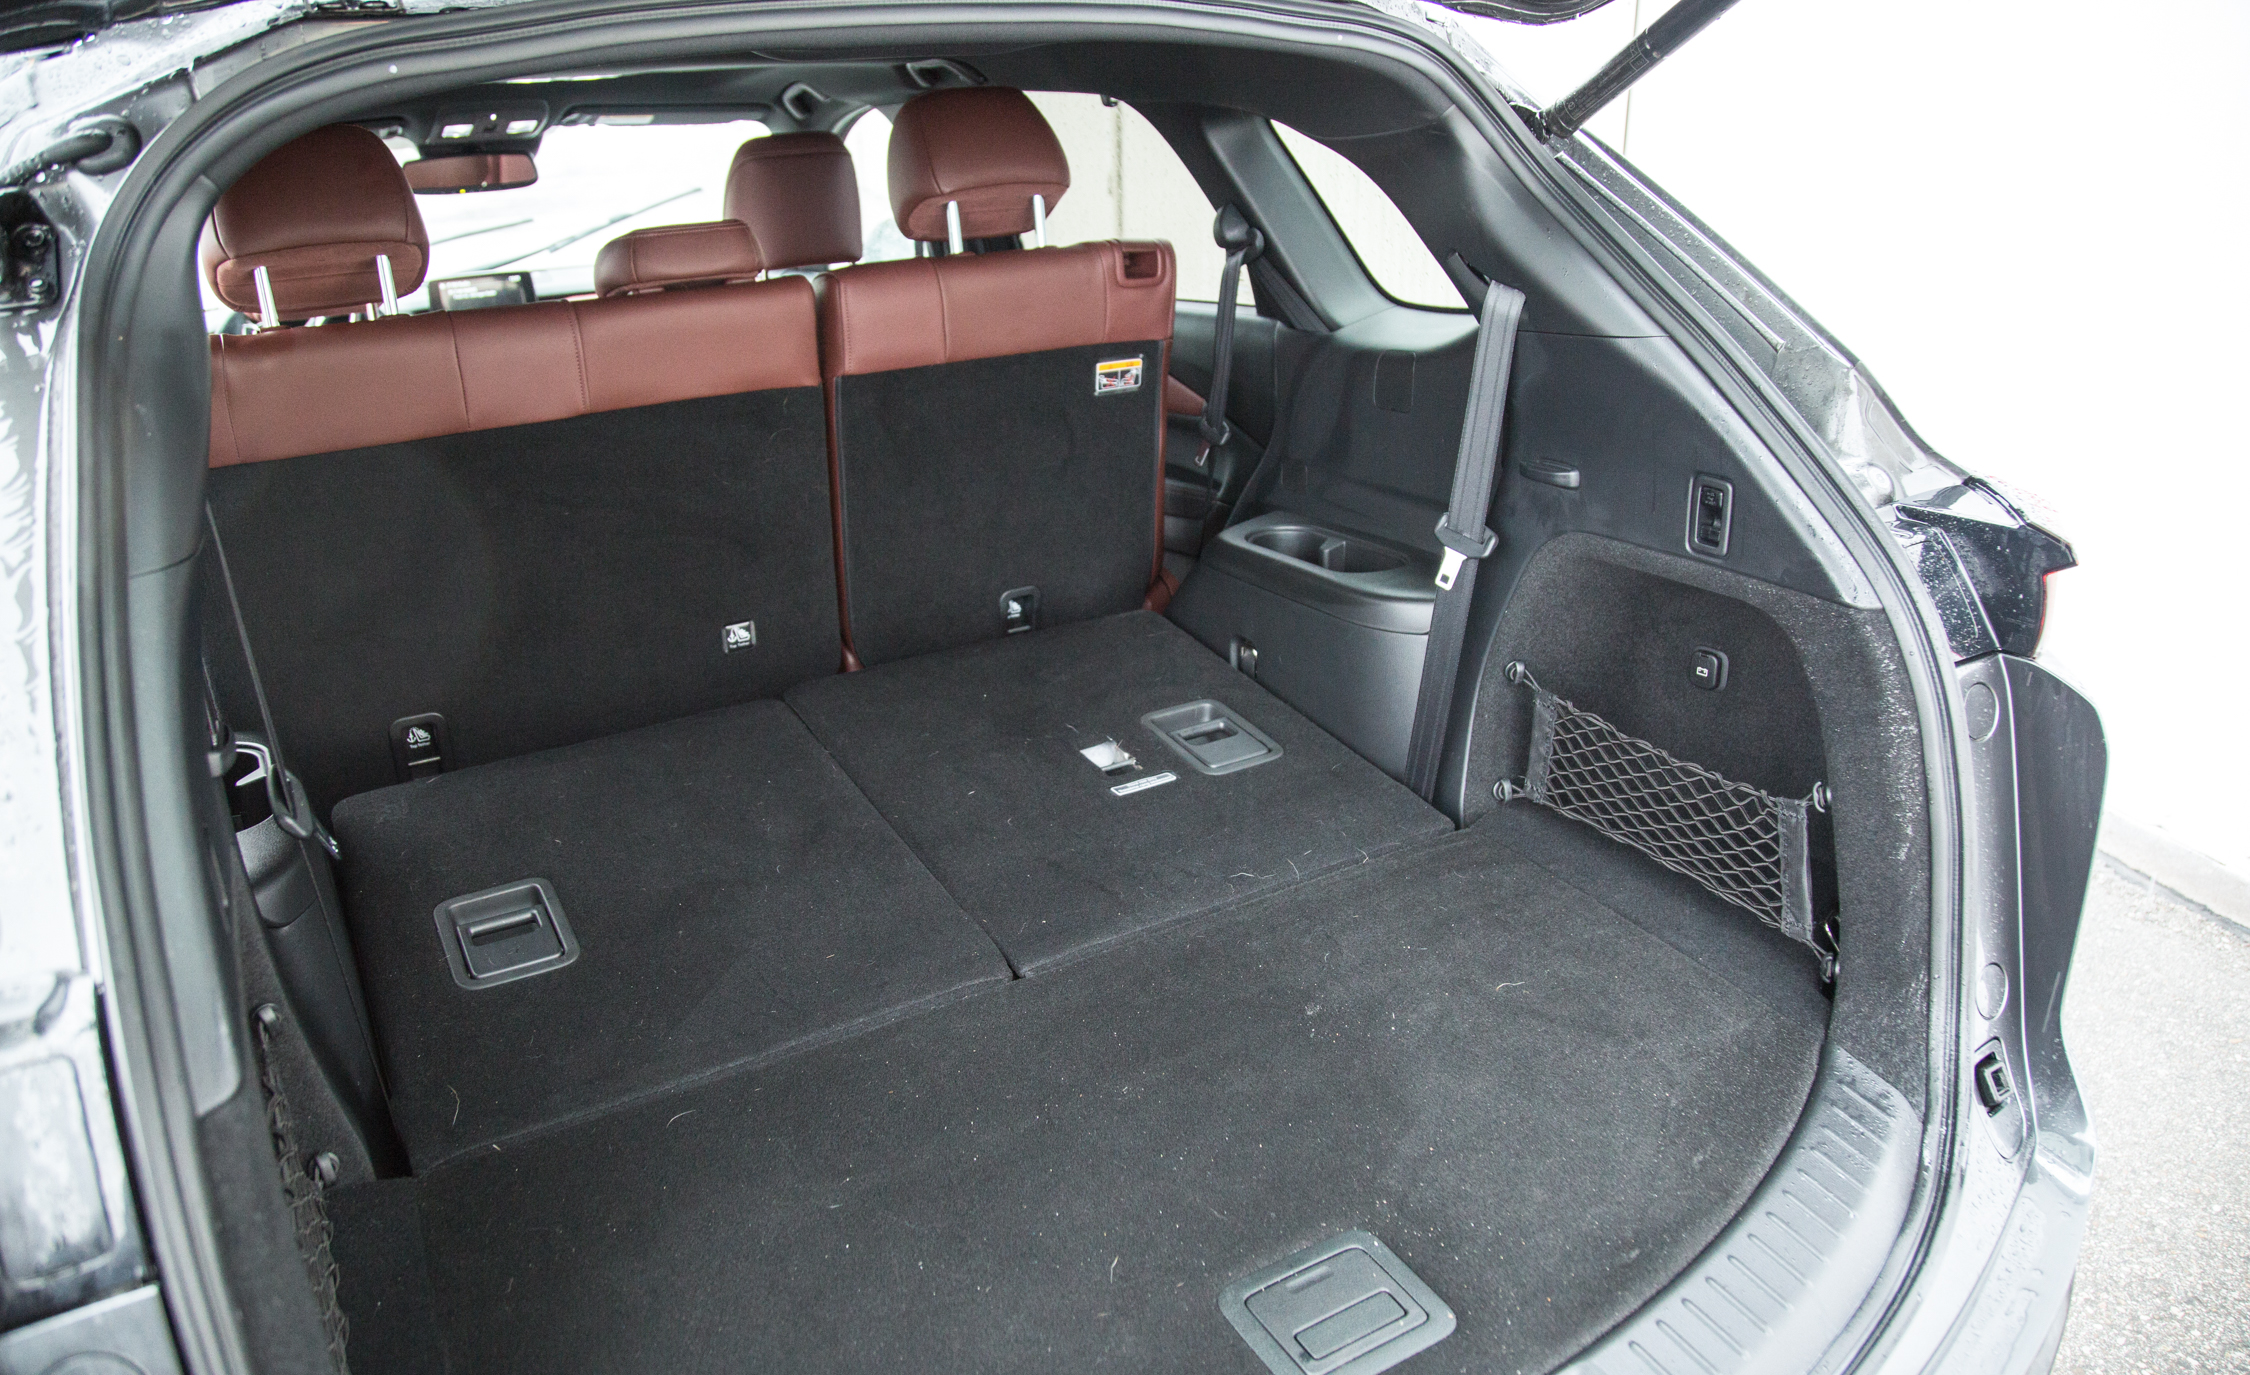 2017 Mazda CX 9 Interior View Cargo (Photo 15 of 28)